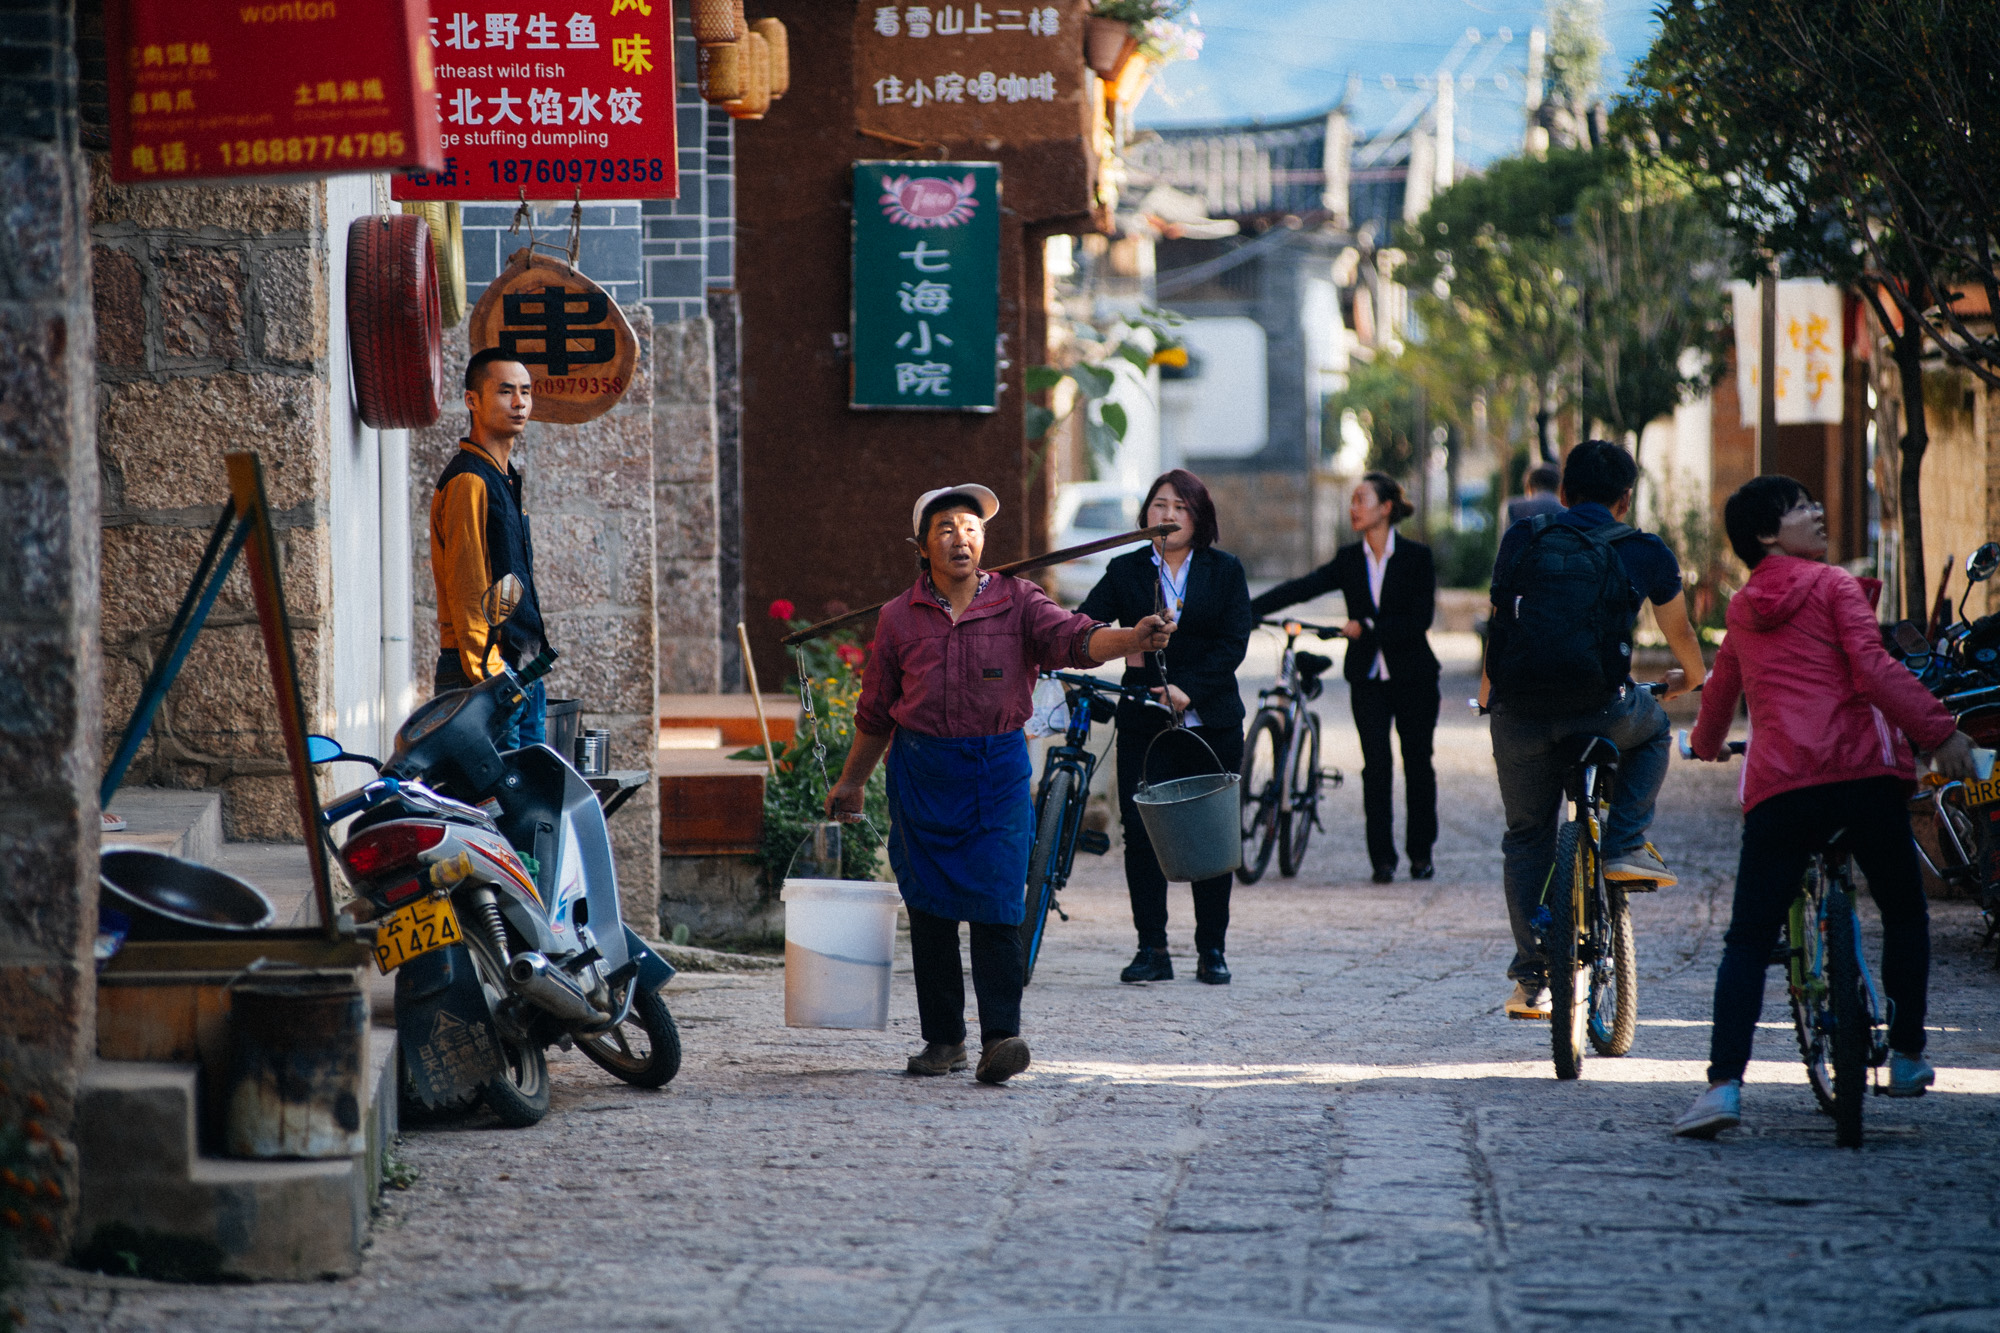 Woman carries two buckets of water while two other women, dressed in a more modern fashion, head back to work, most likely at the restaurants close to the frescoes where all the tourists are taken.